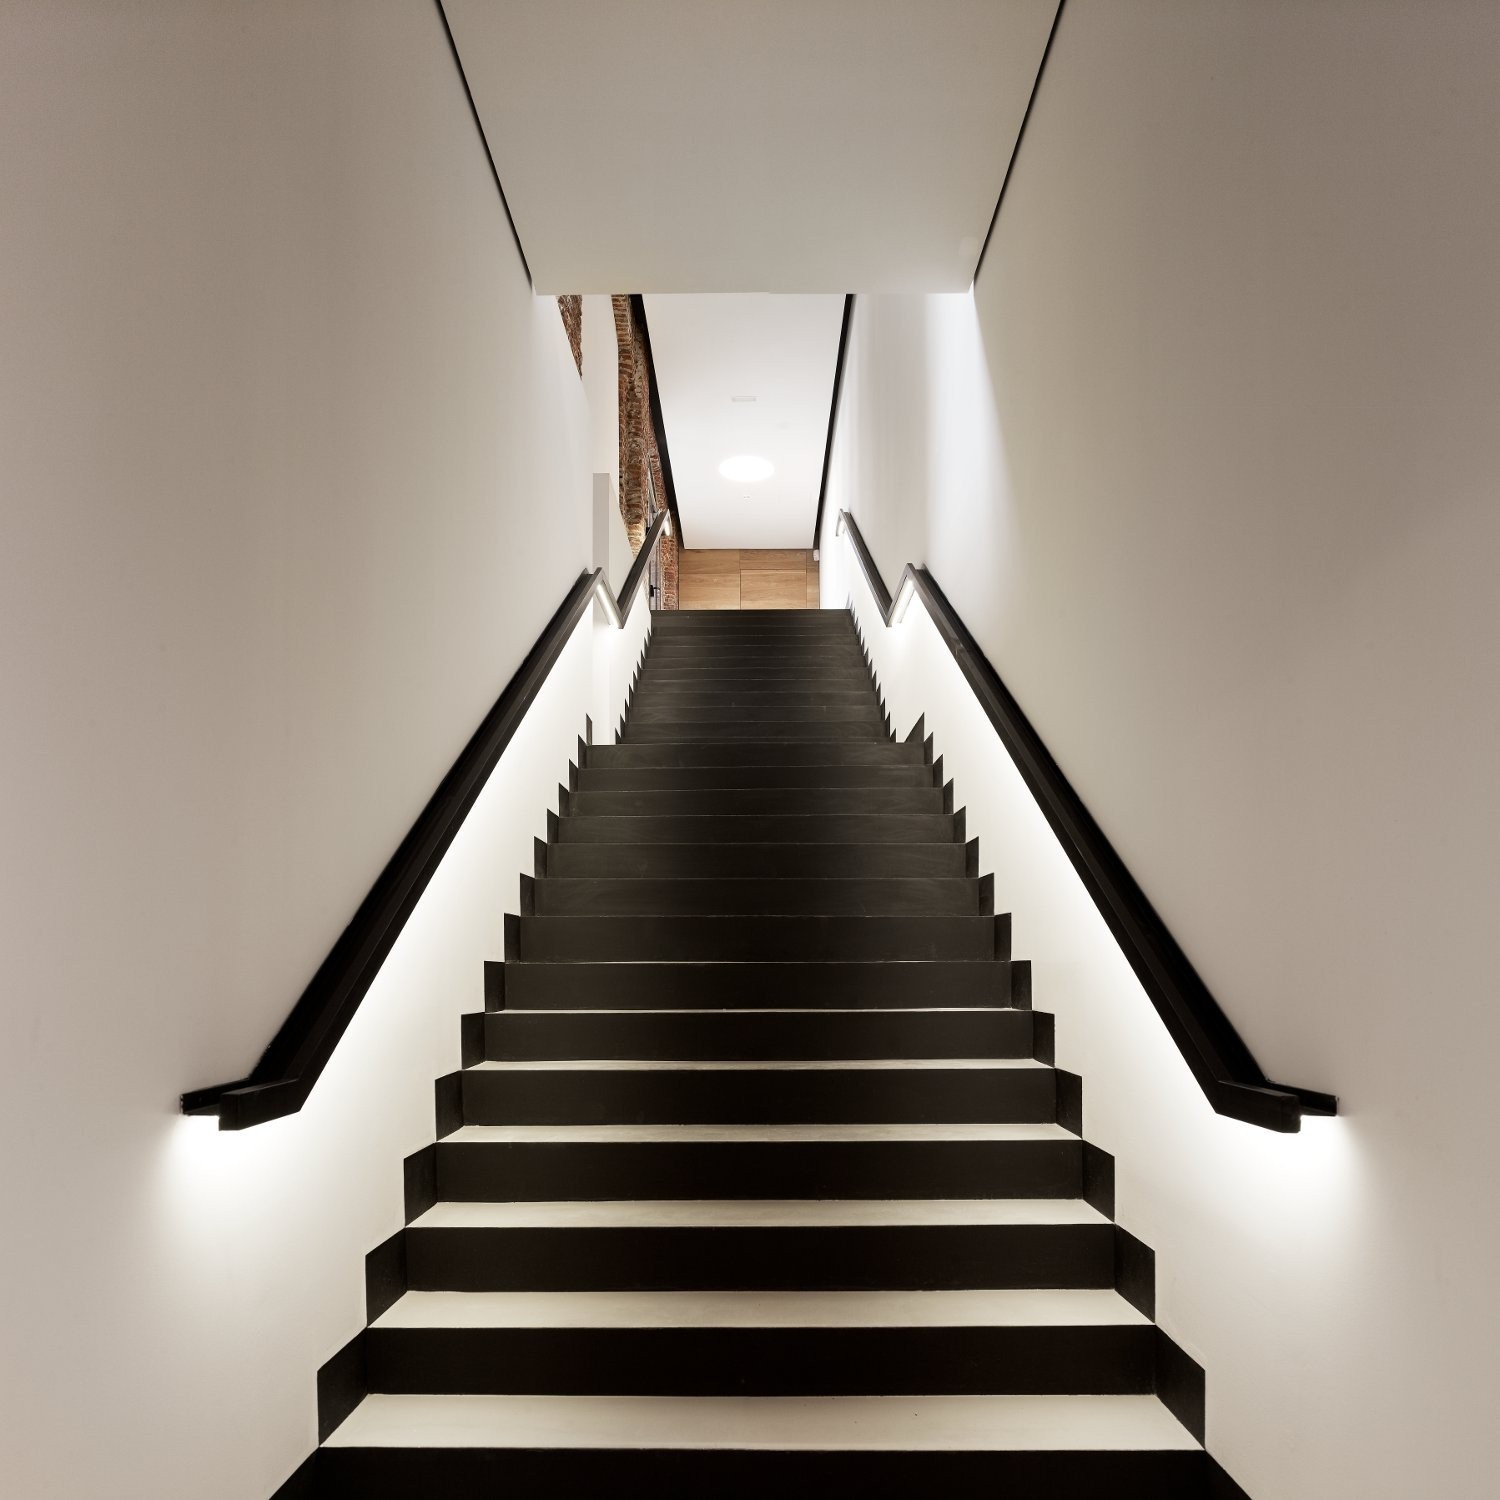 lighting a stairway